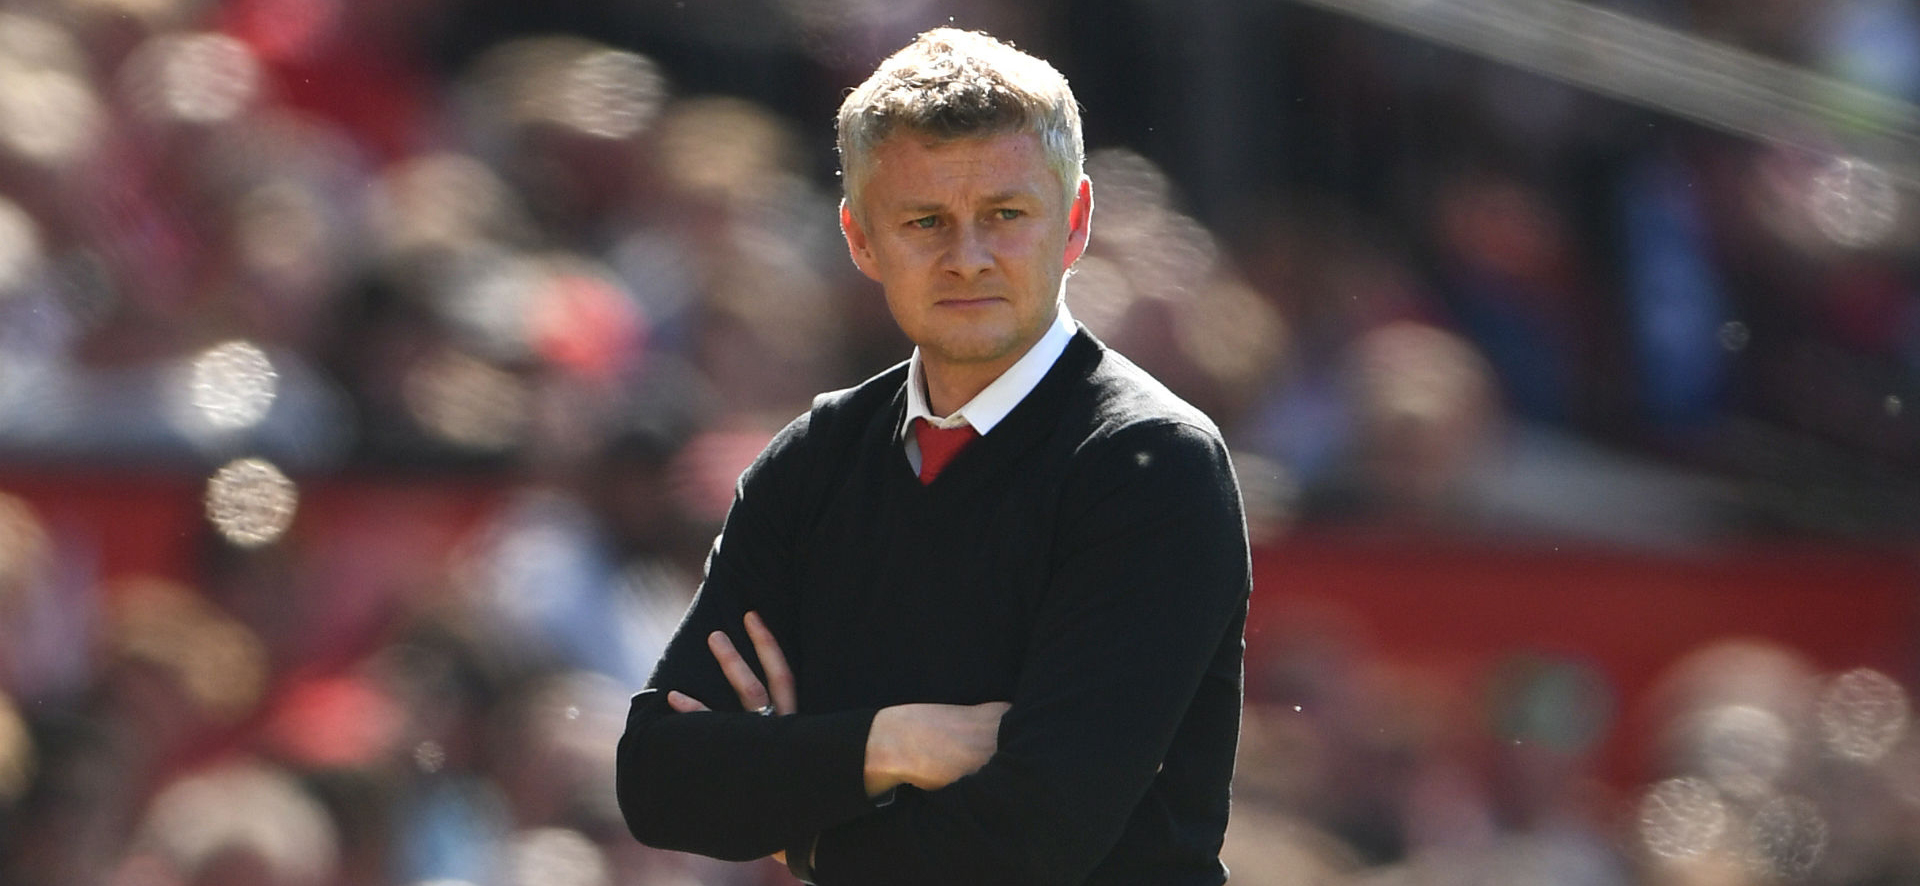 Manchester United under the management of Ole-Gunnar Solskjaer have confidently entered the transfer market, having bought Swansea player as well as releasing Valencia